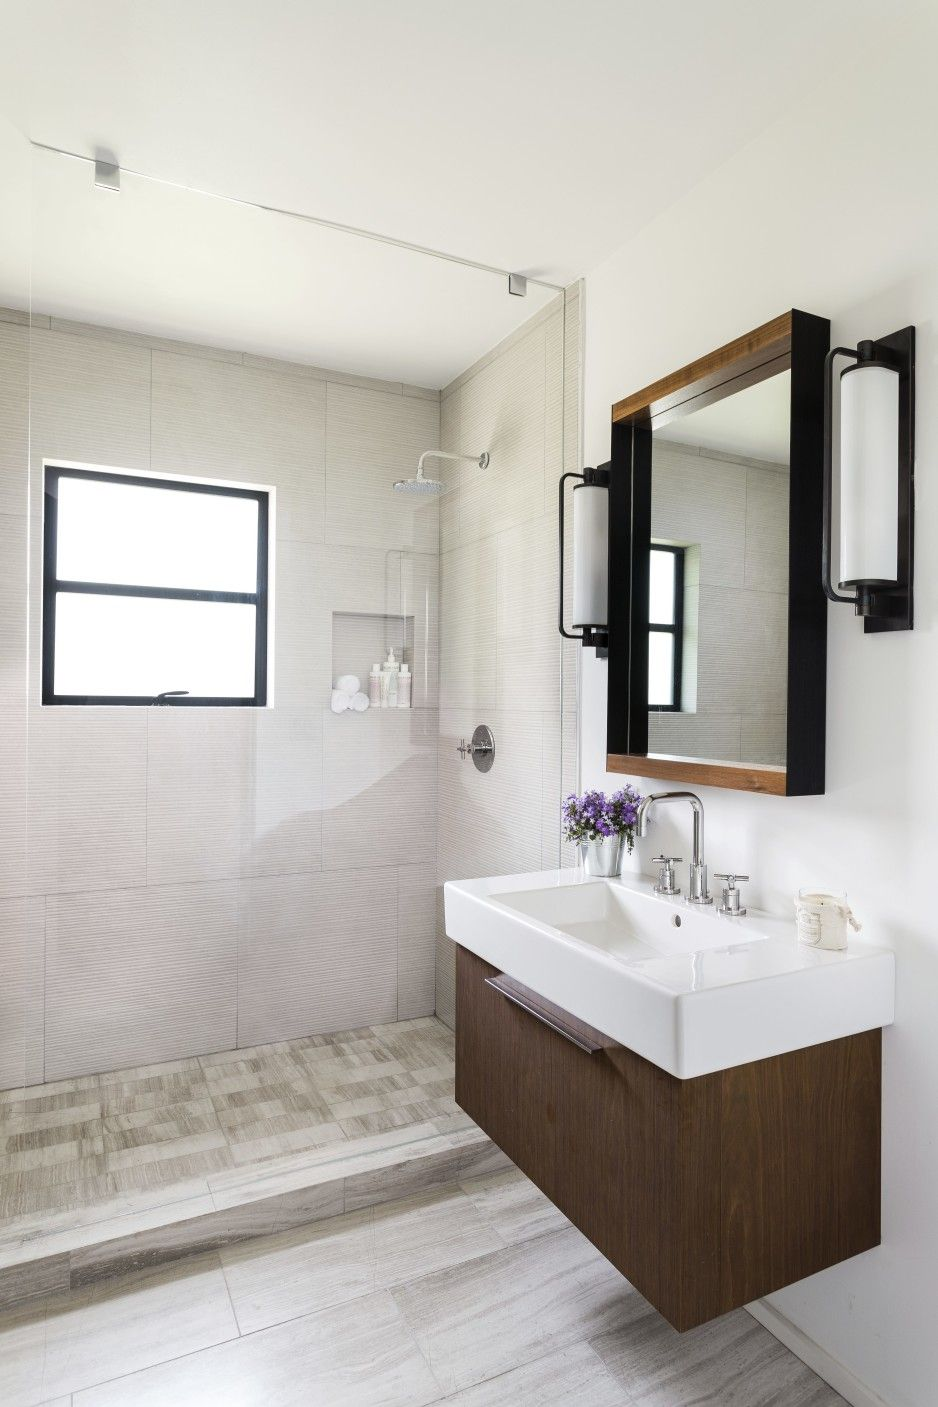 bathroom renovations for small spaces. bathroom remodels small spaces  ideas 2017 2018 Pinterest